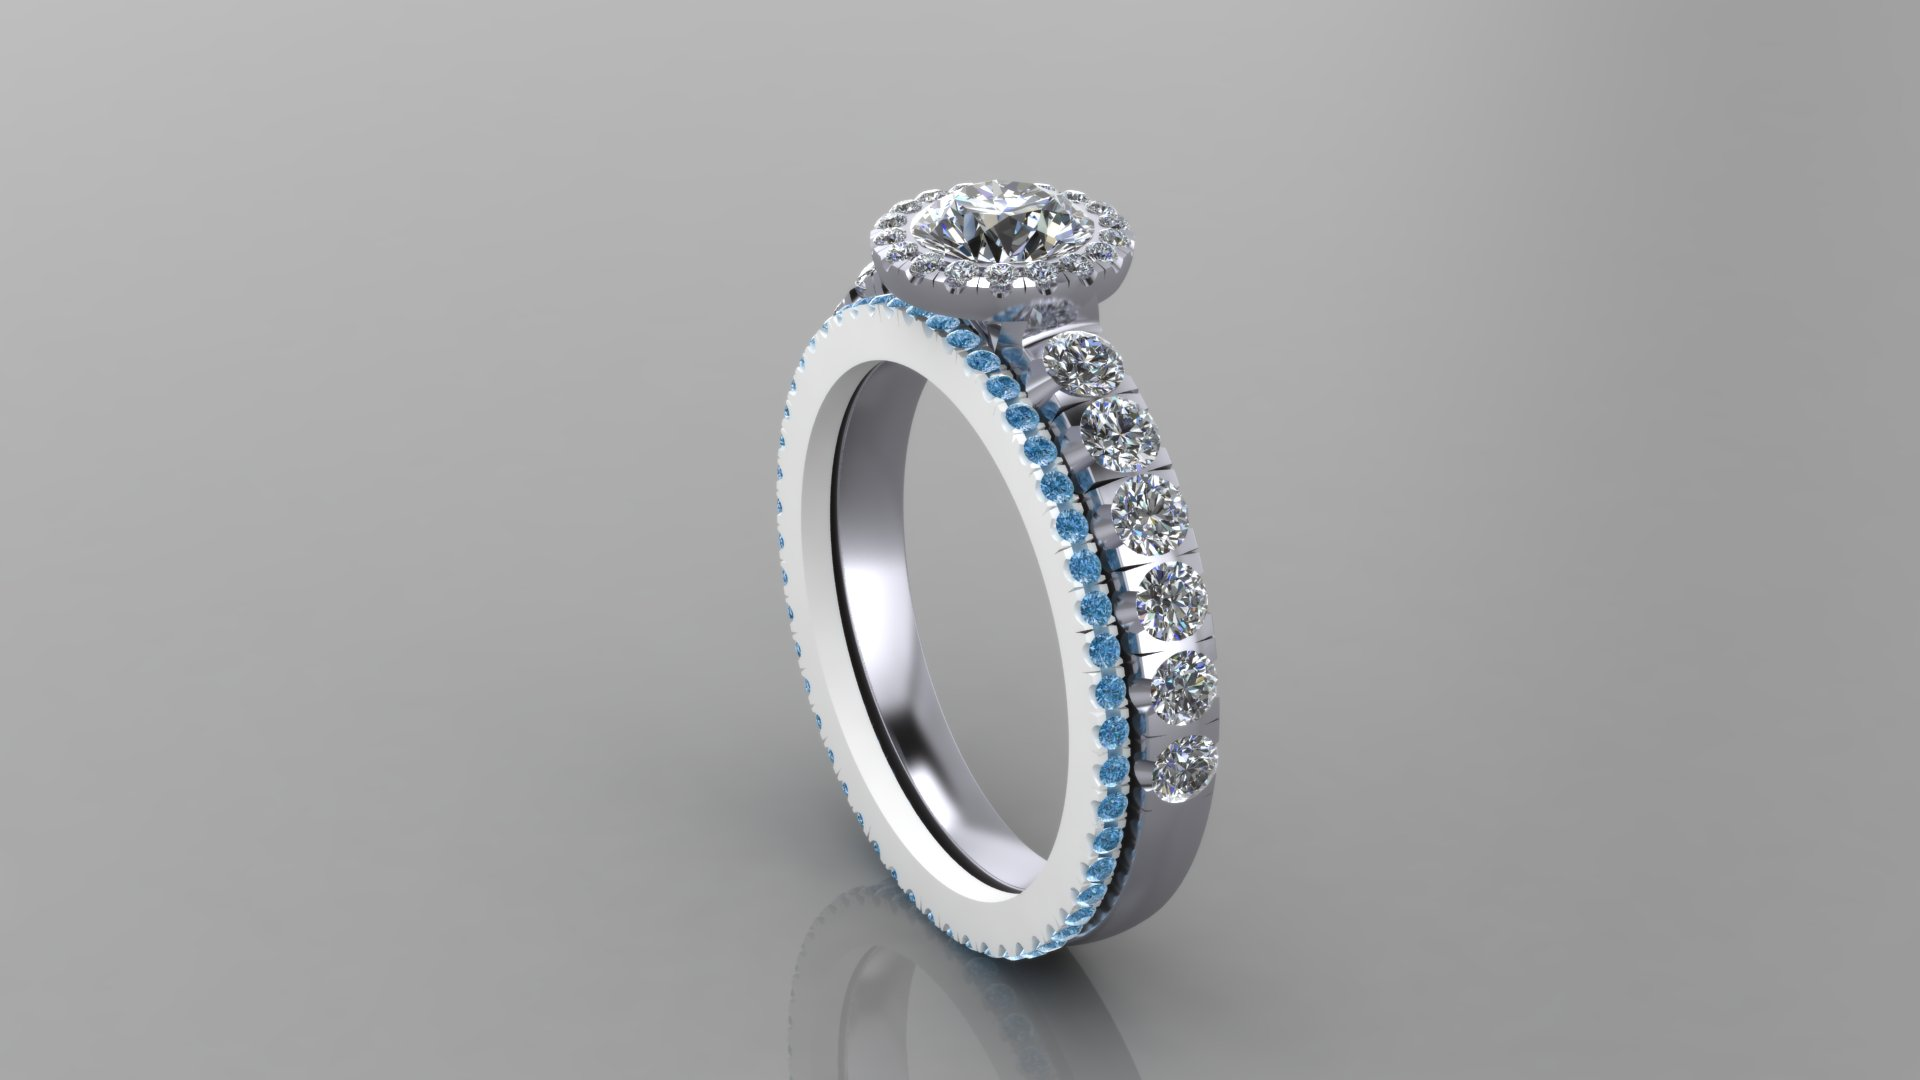 CAD render of the platinum and diamond engagement ring with a nested eternity band